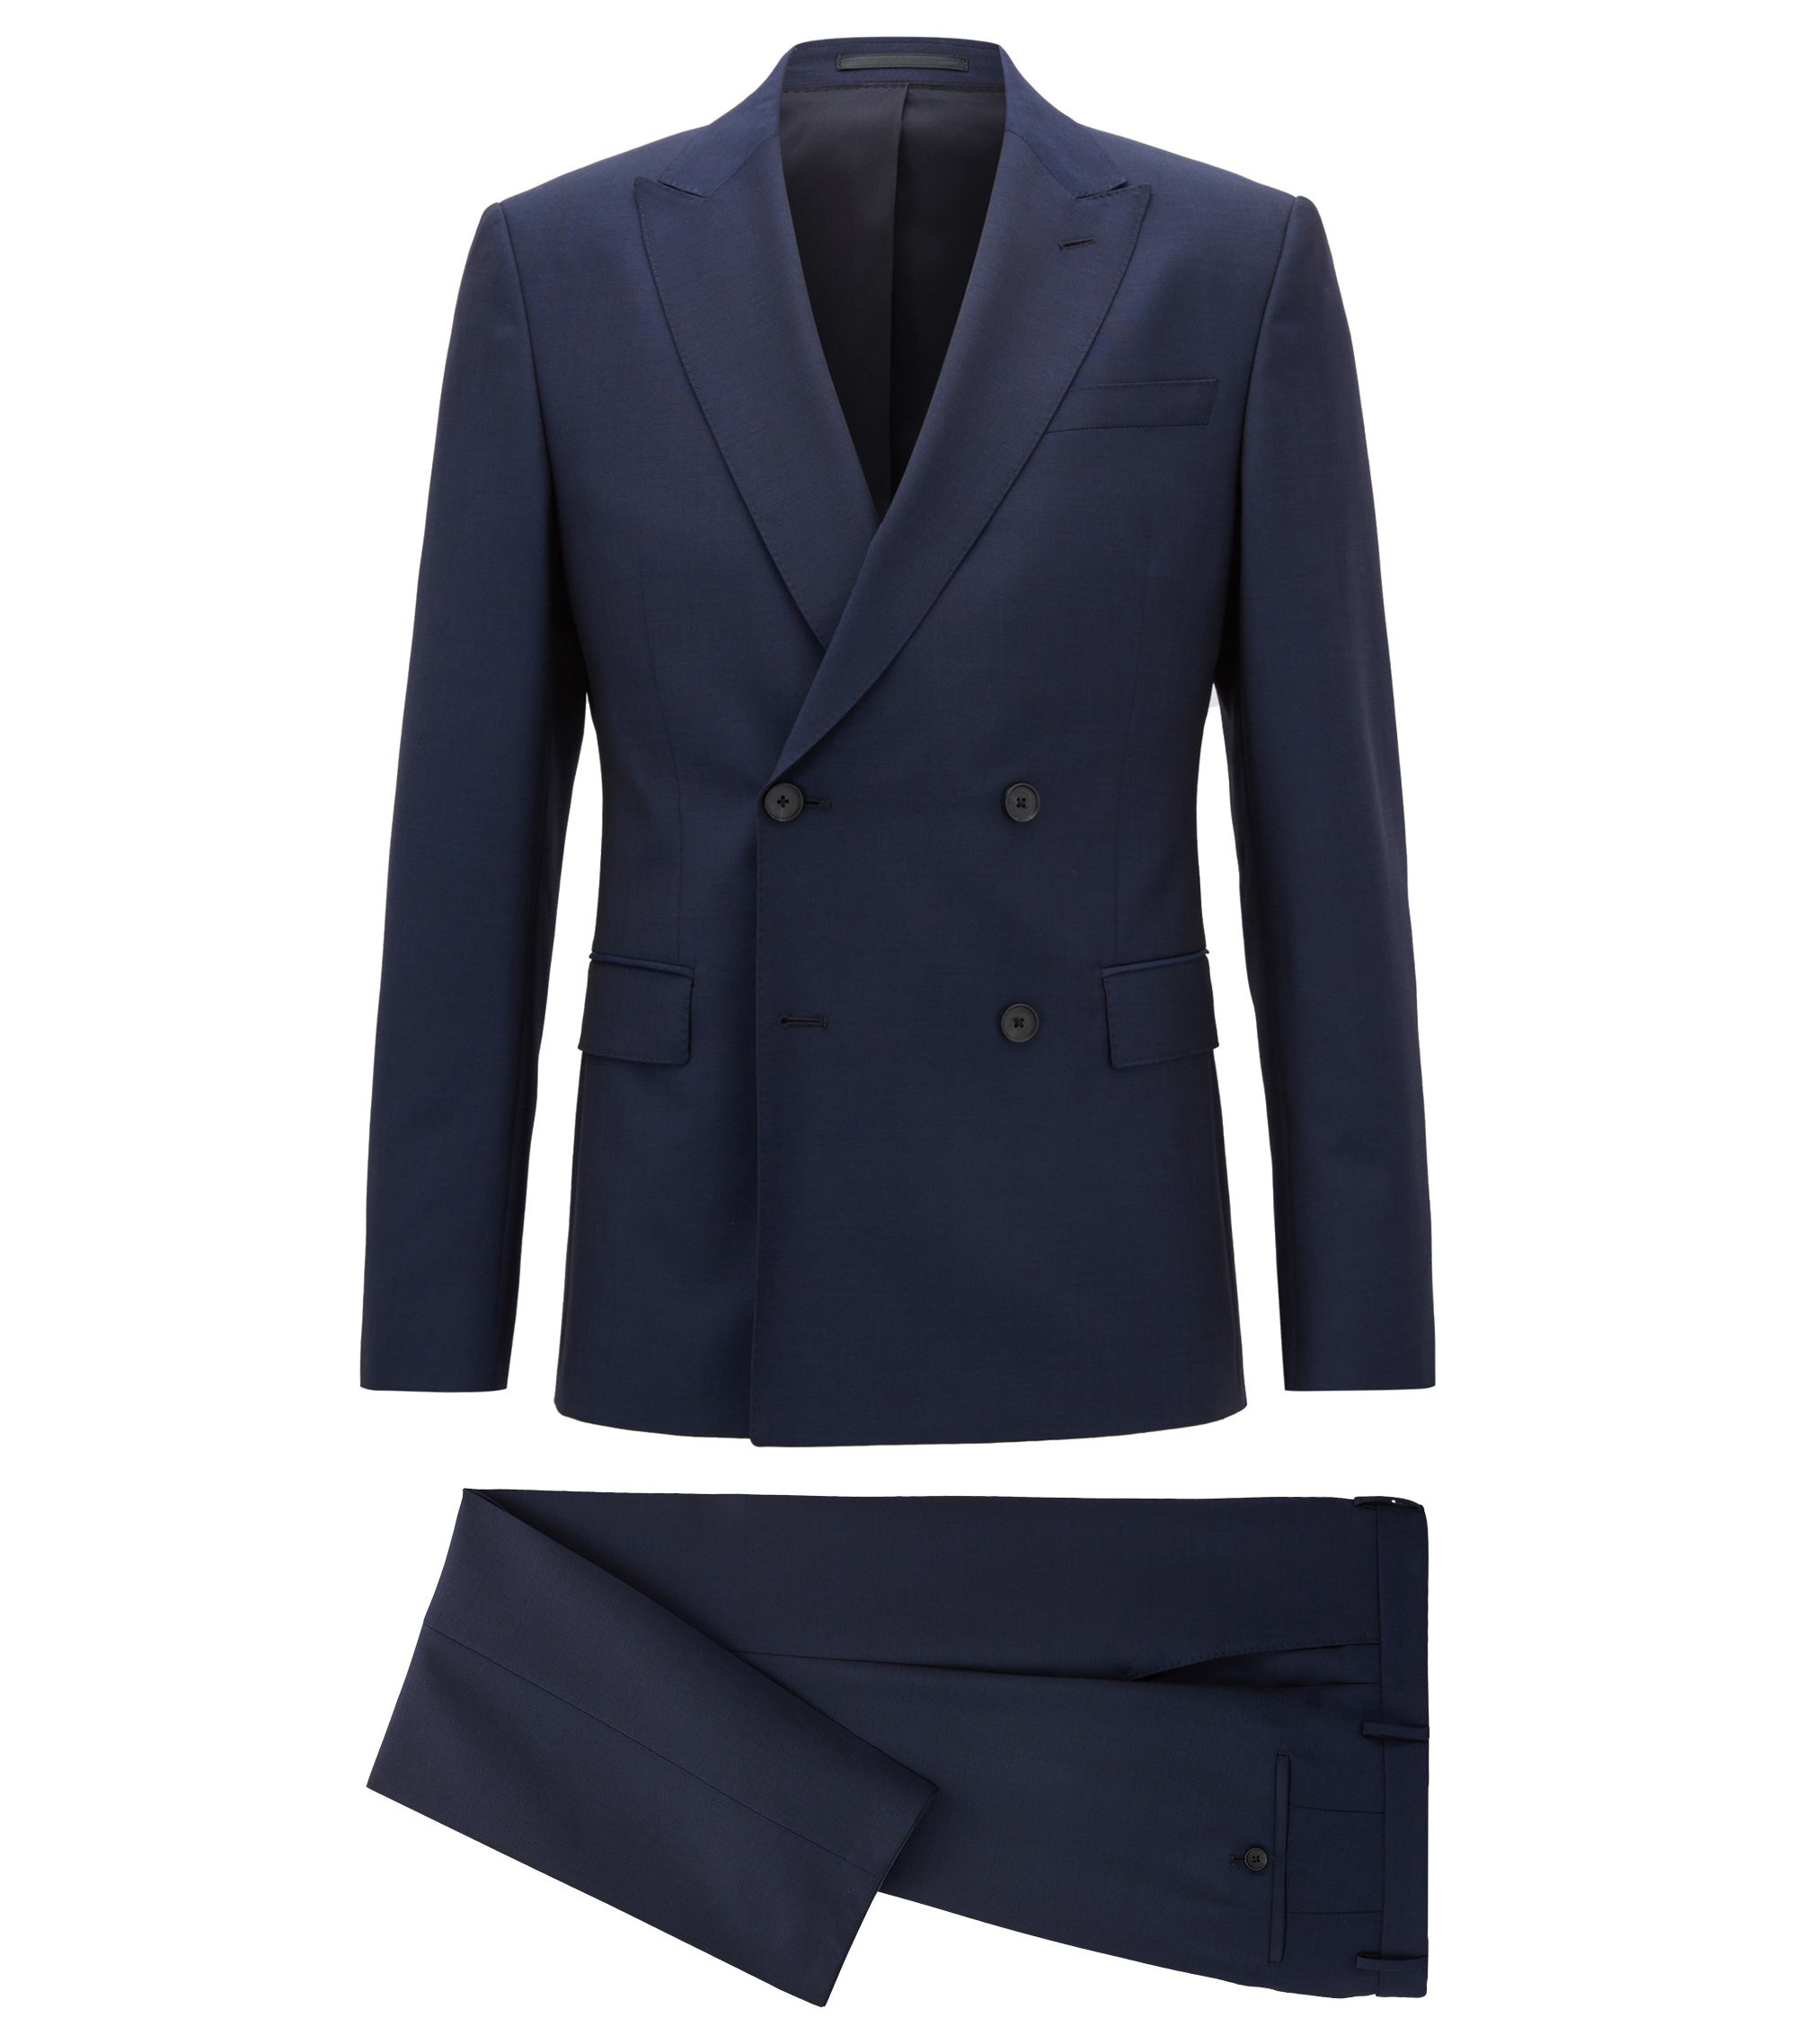 Virgin Wool/Mohair Suit, Slim Fit  | Namil/Ben, Dark Blue